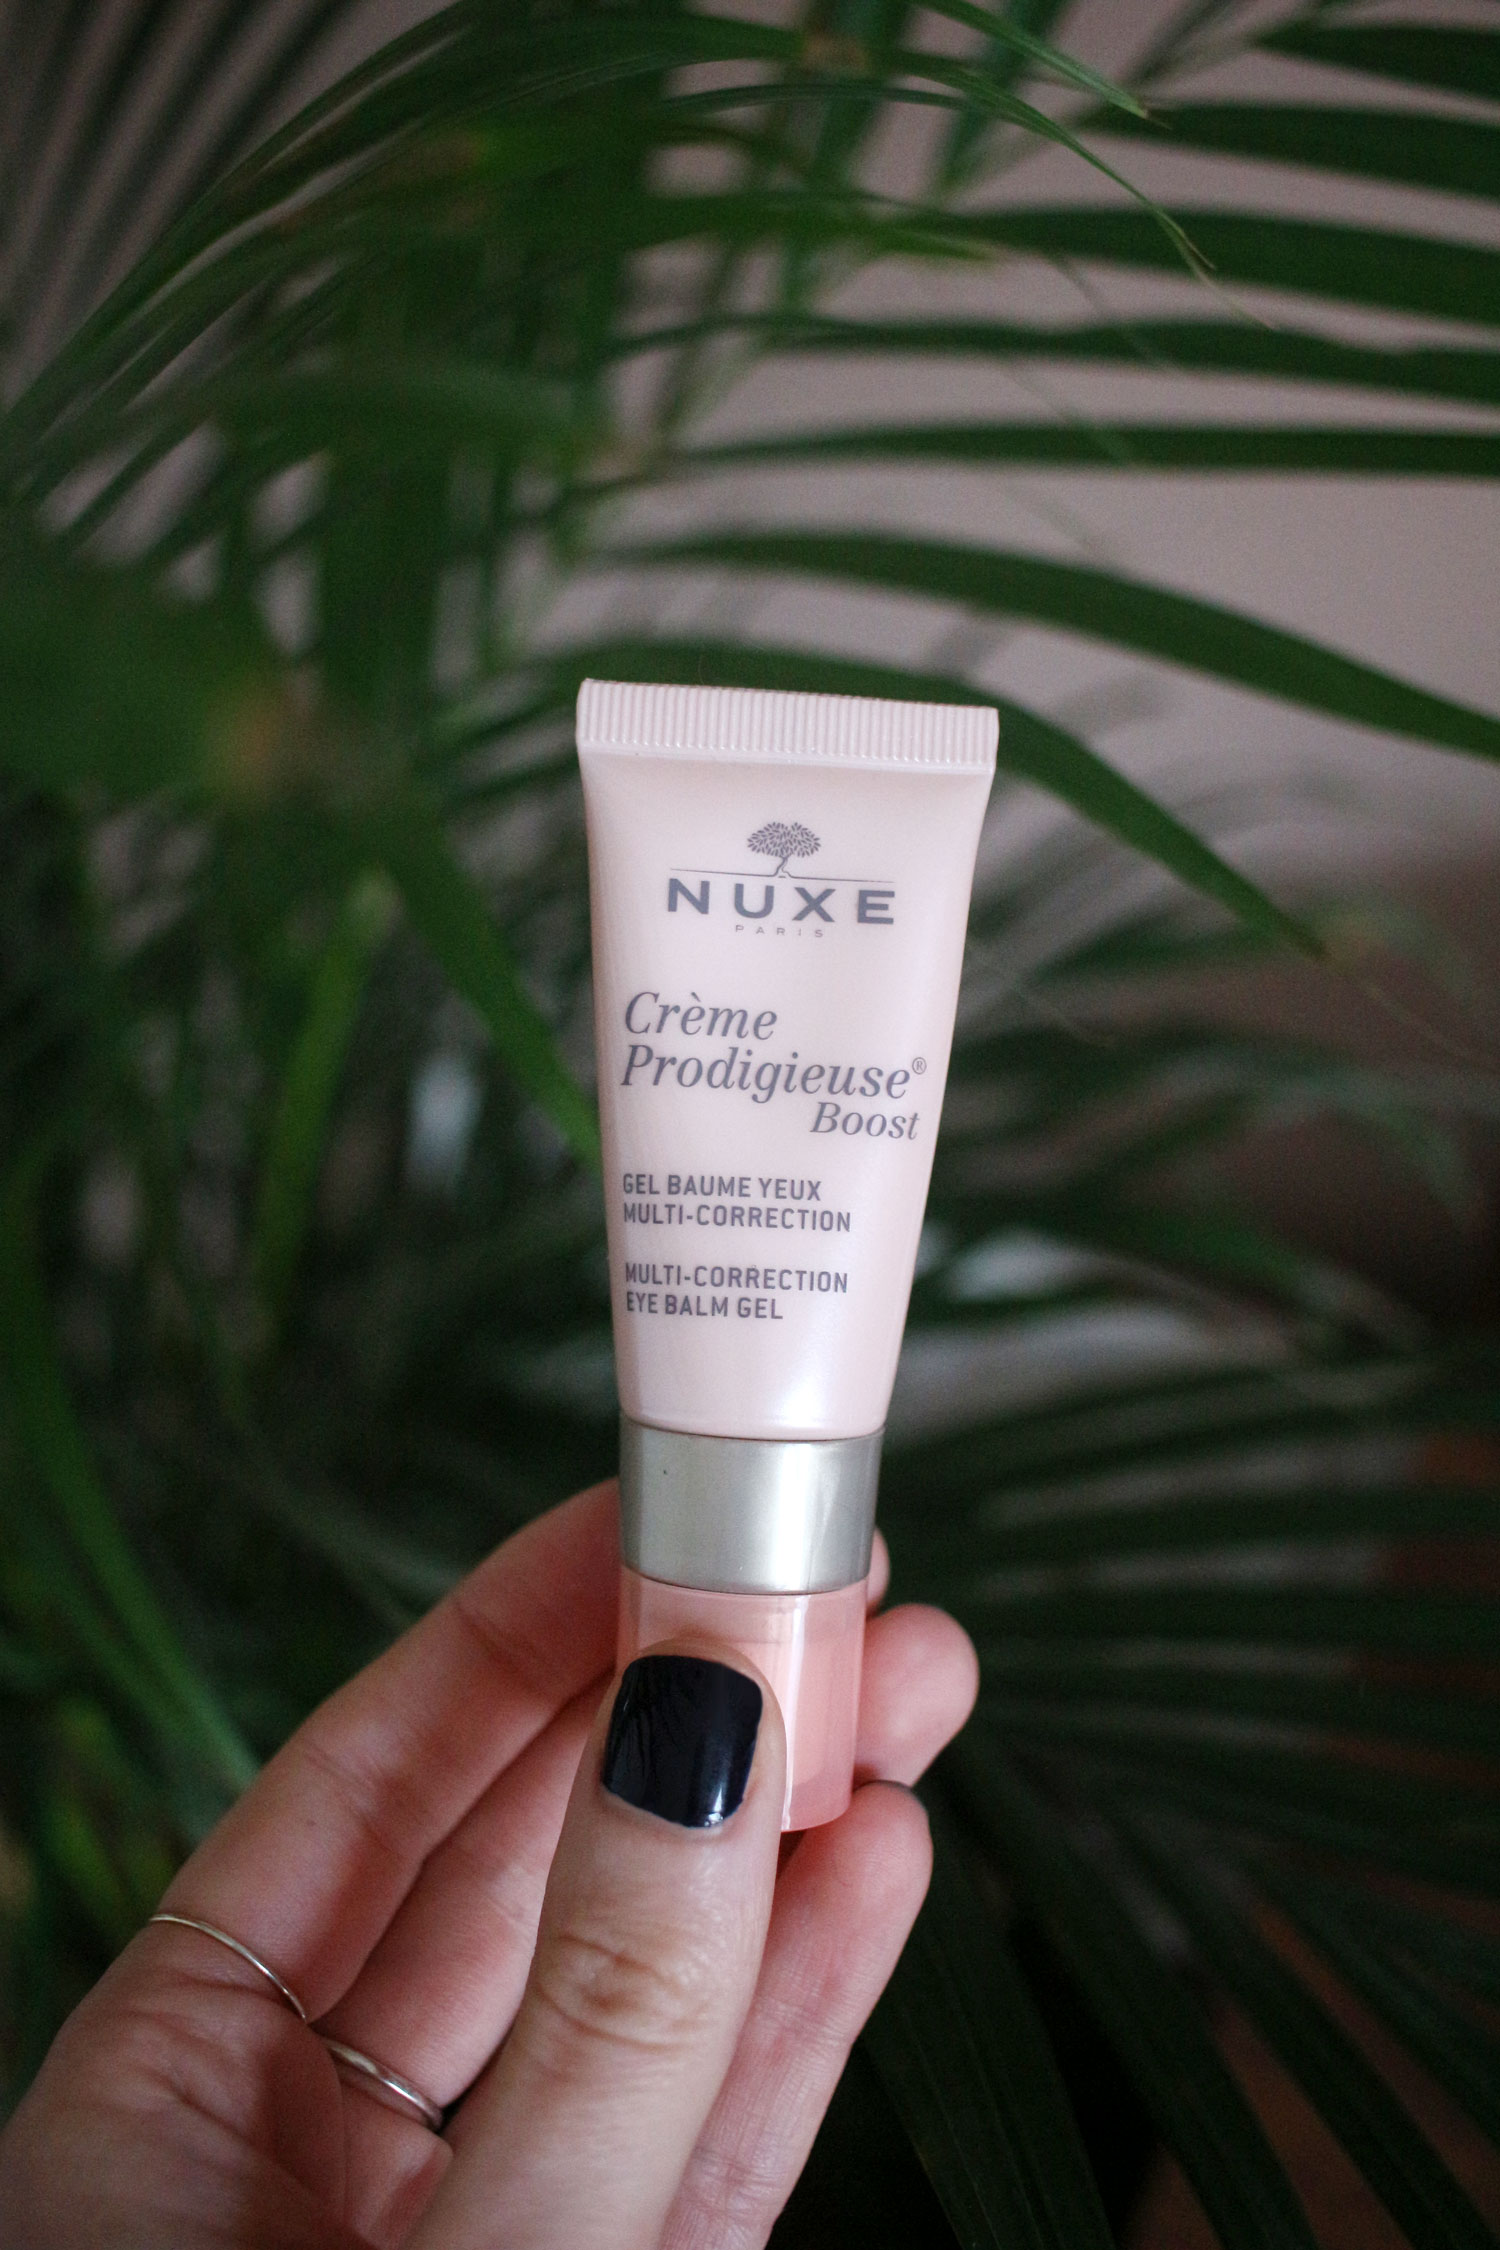 nuxe-creme-prodigieuse-boost-range-review-cream-2